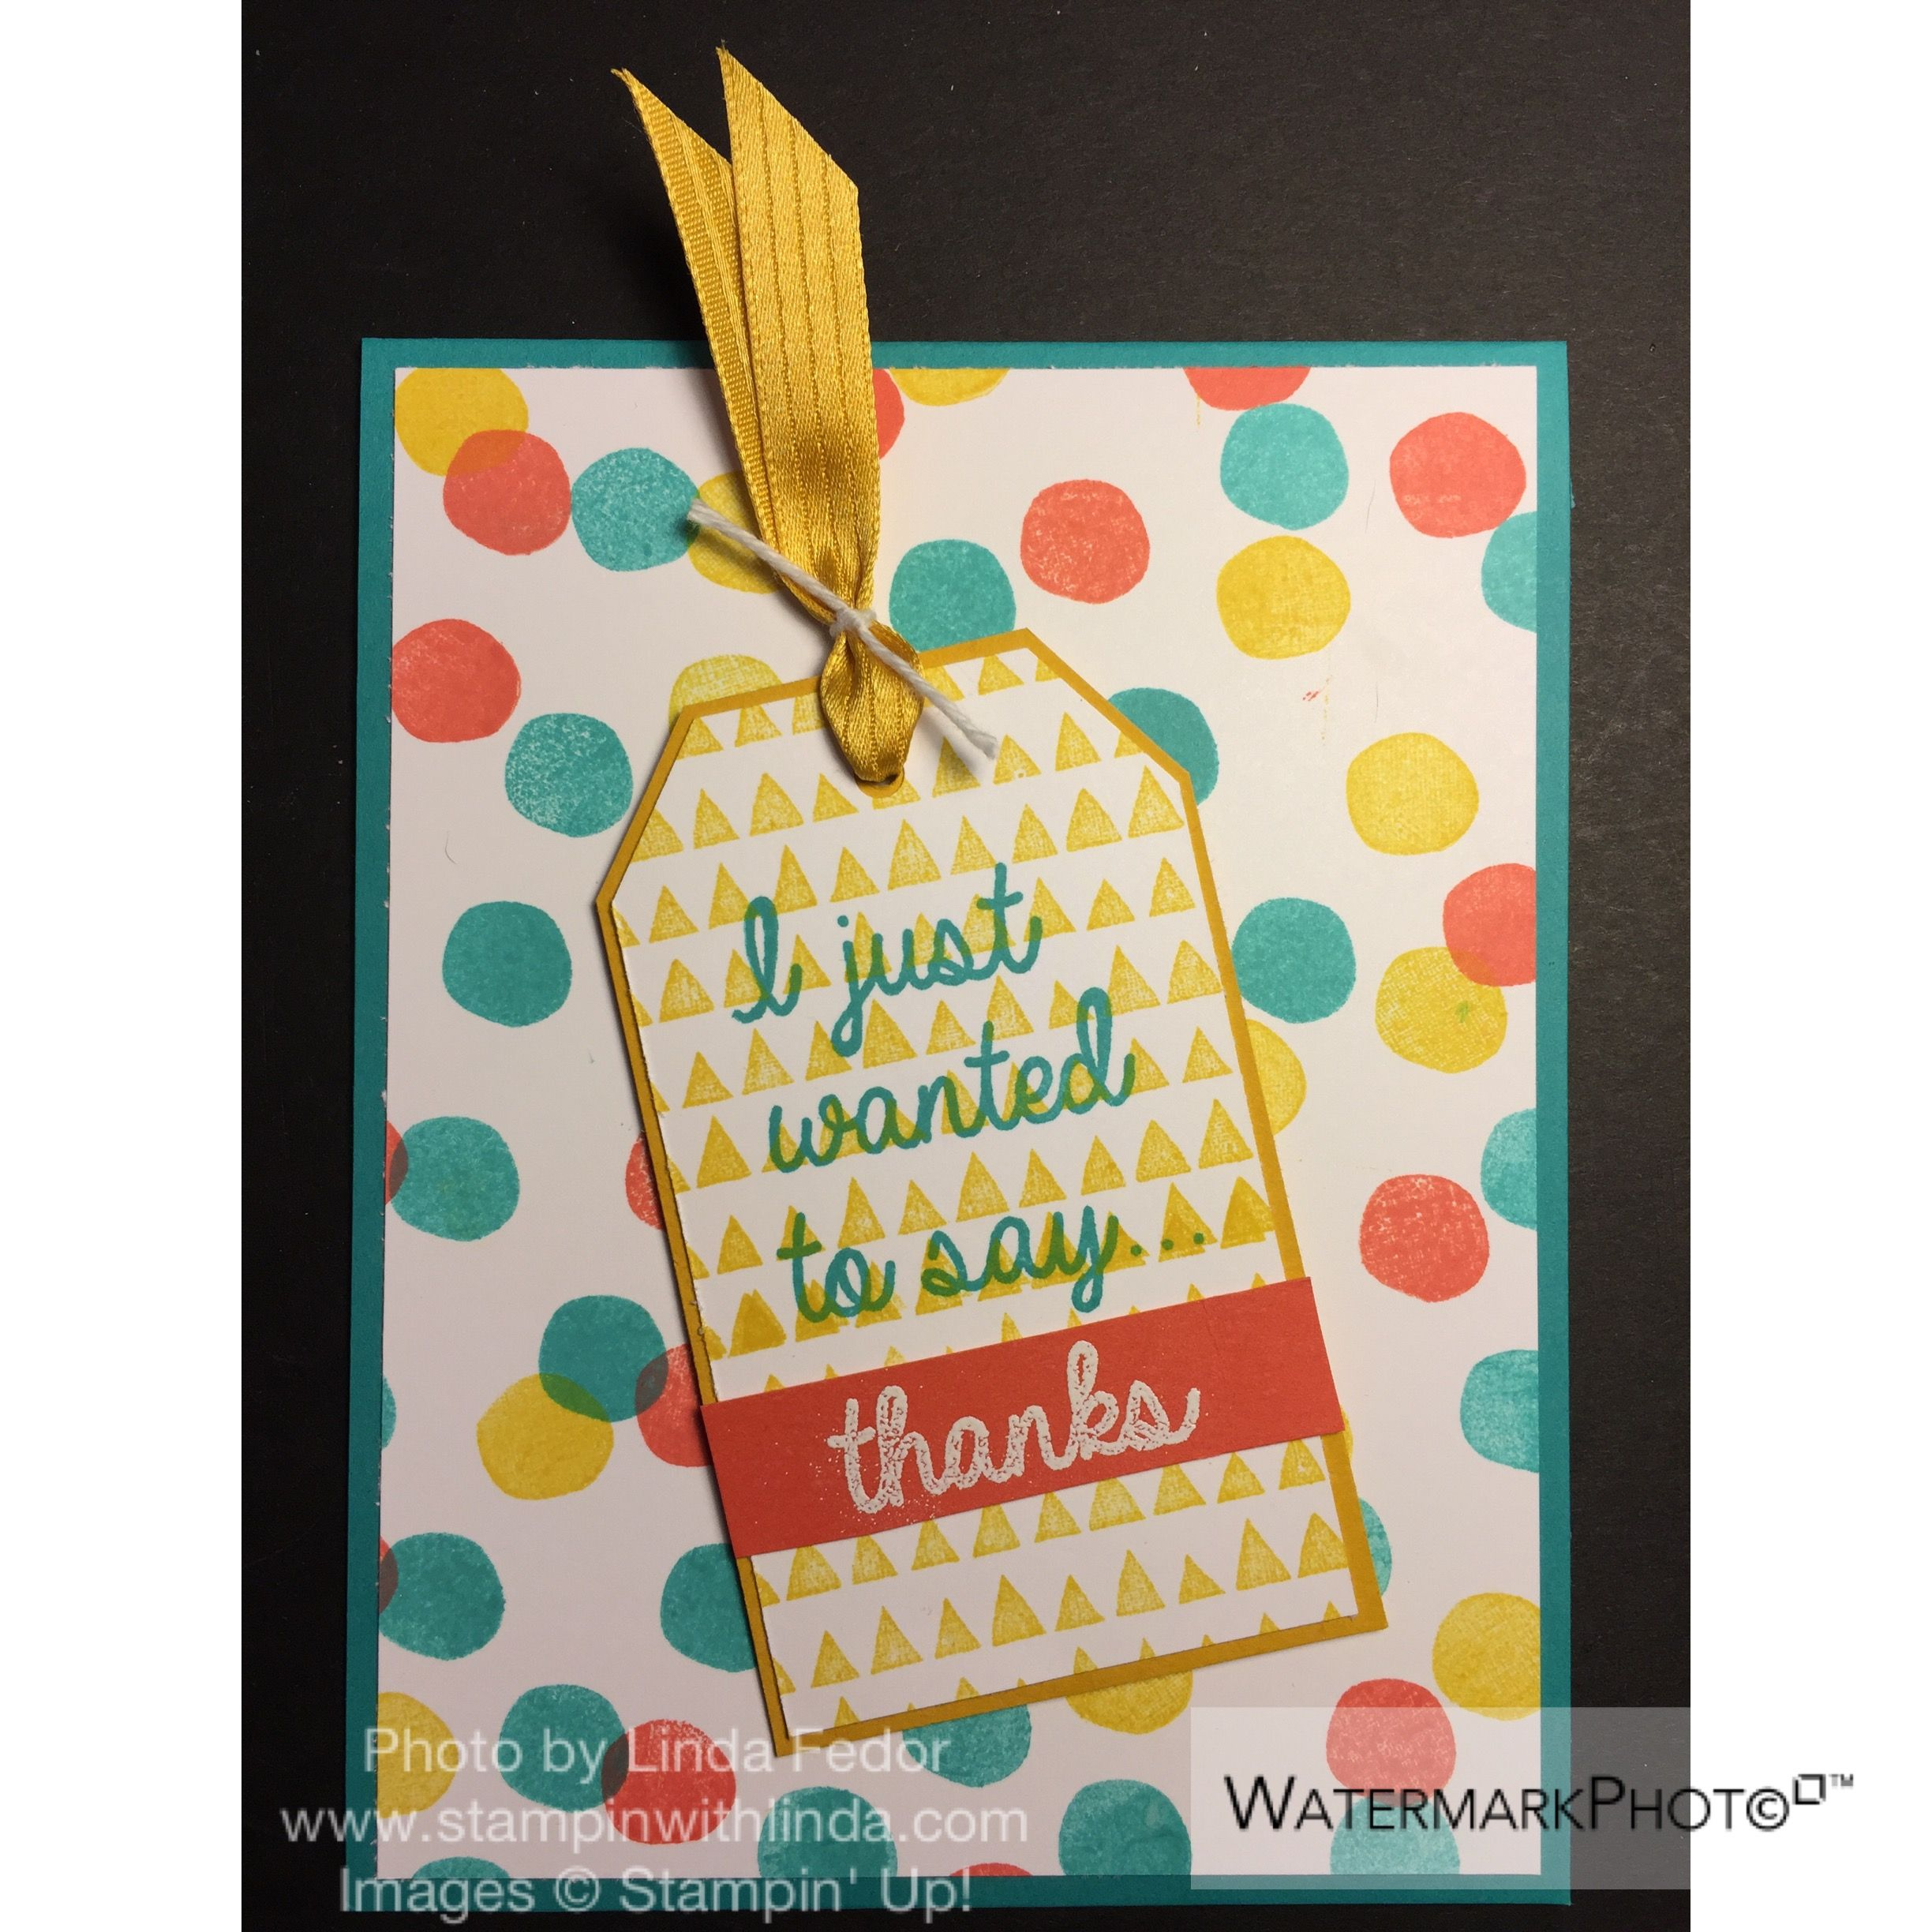 I Just Wanted to Say Thanks Alternate Paper Pumpkin Card Using Stampin' Up! February 2015 Layers of Gratitude Stamp Set/ www.stampinwithlinda.com